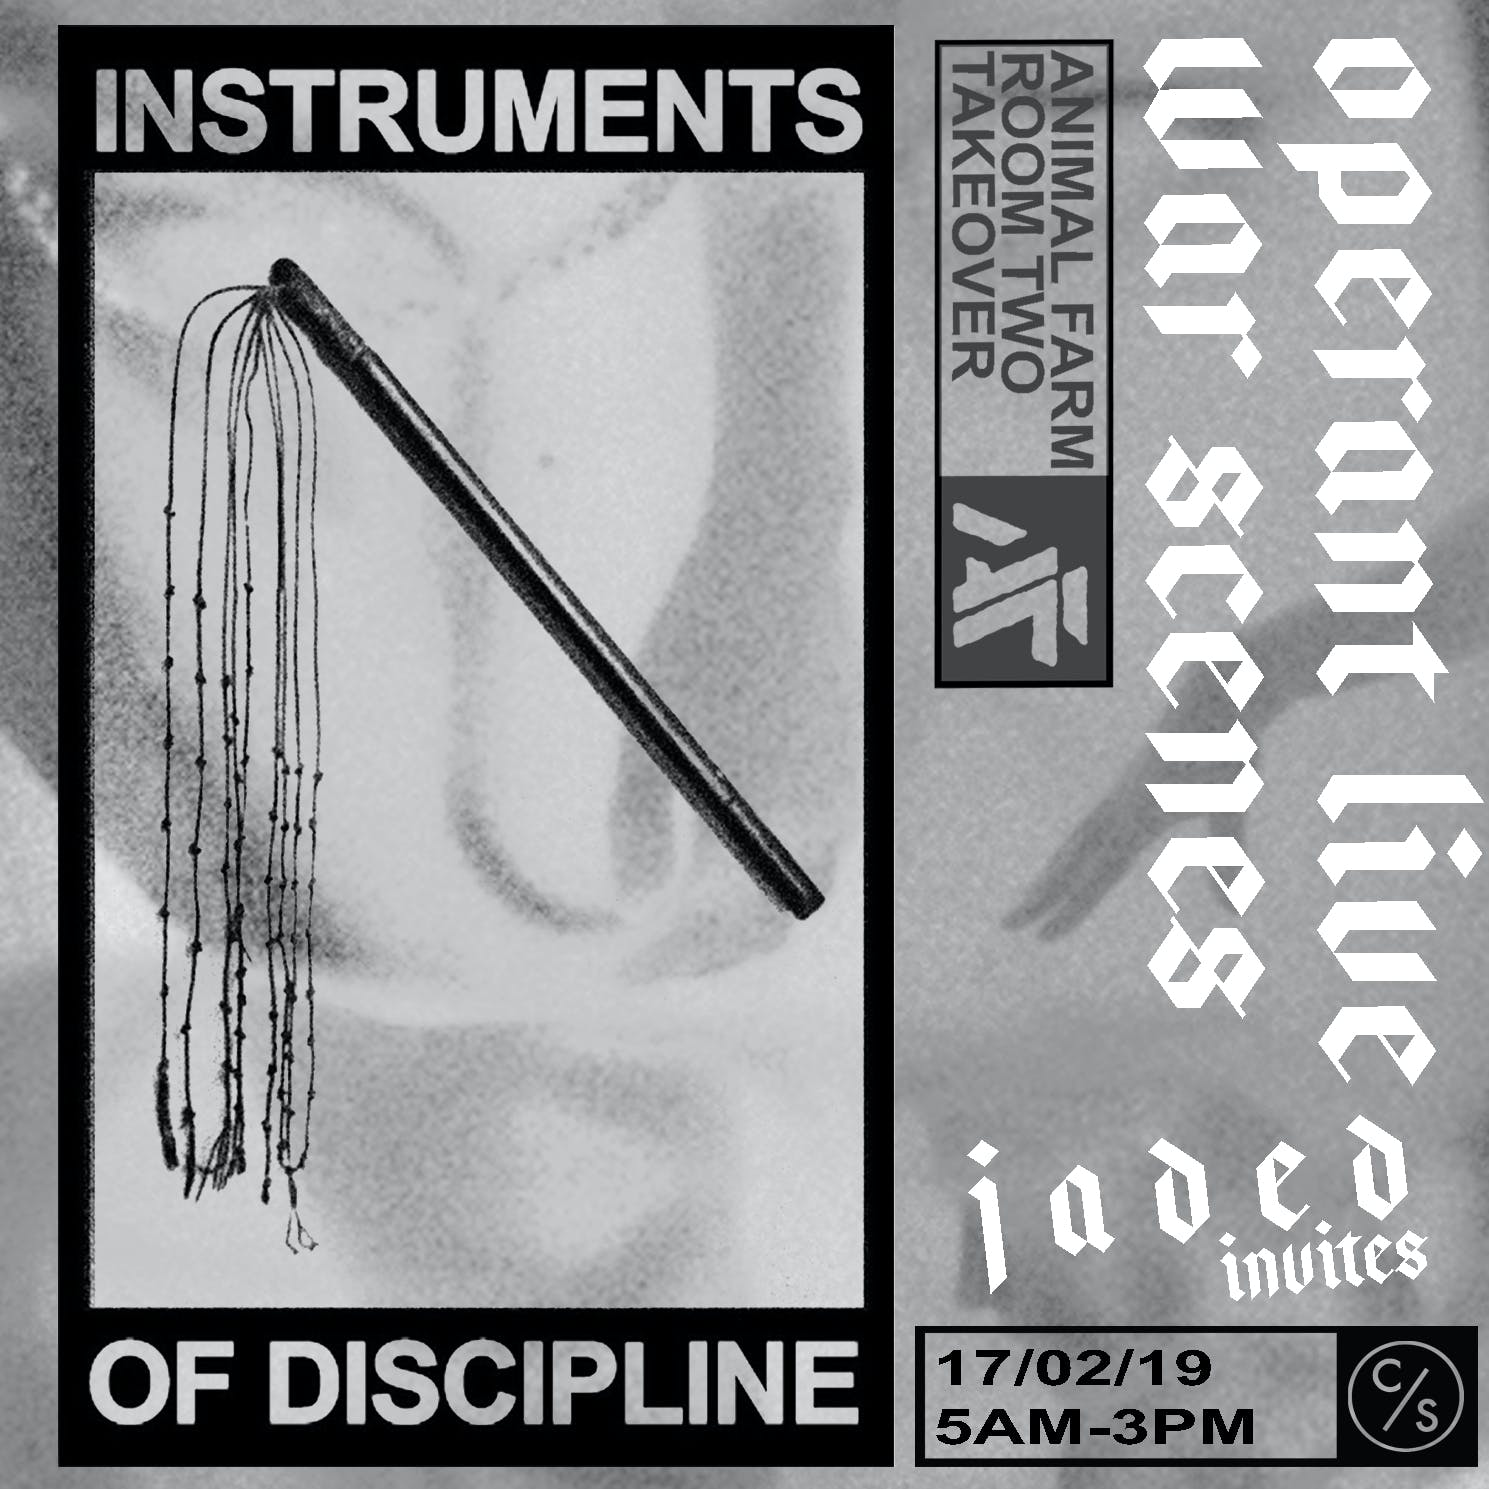 Instruments Of Discipline to host their first London showcase.